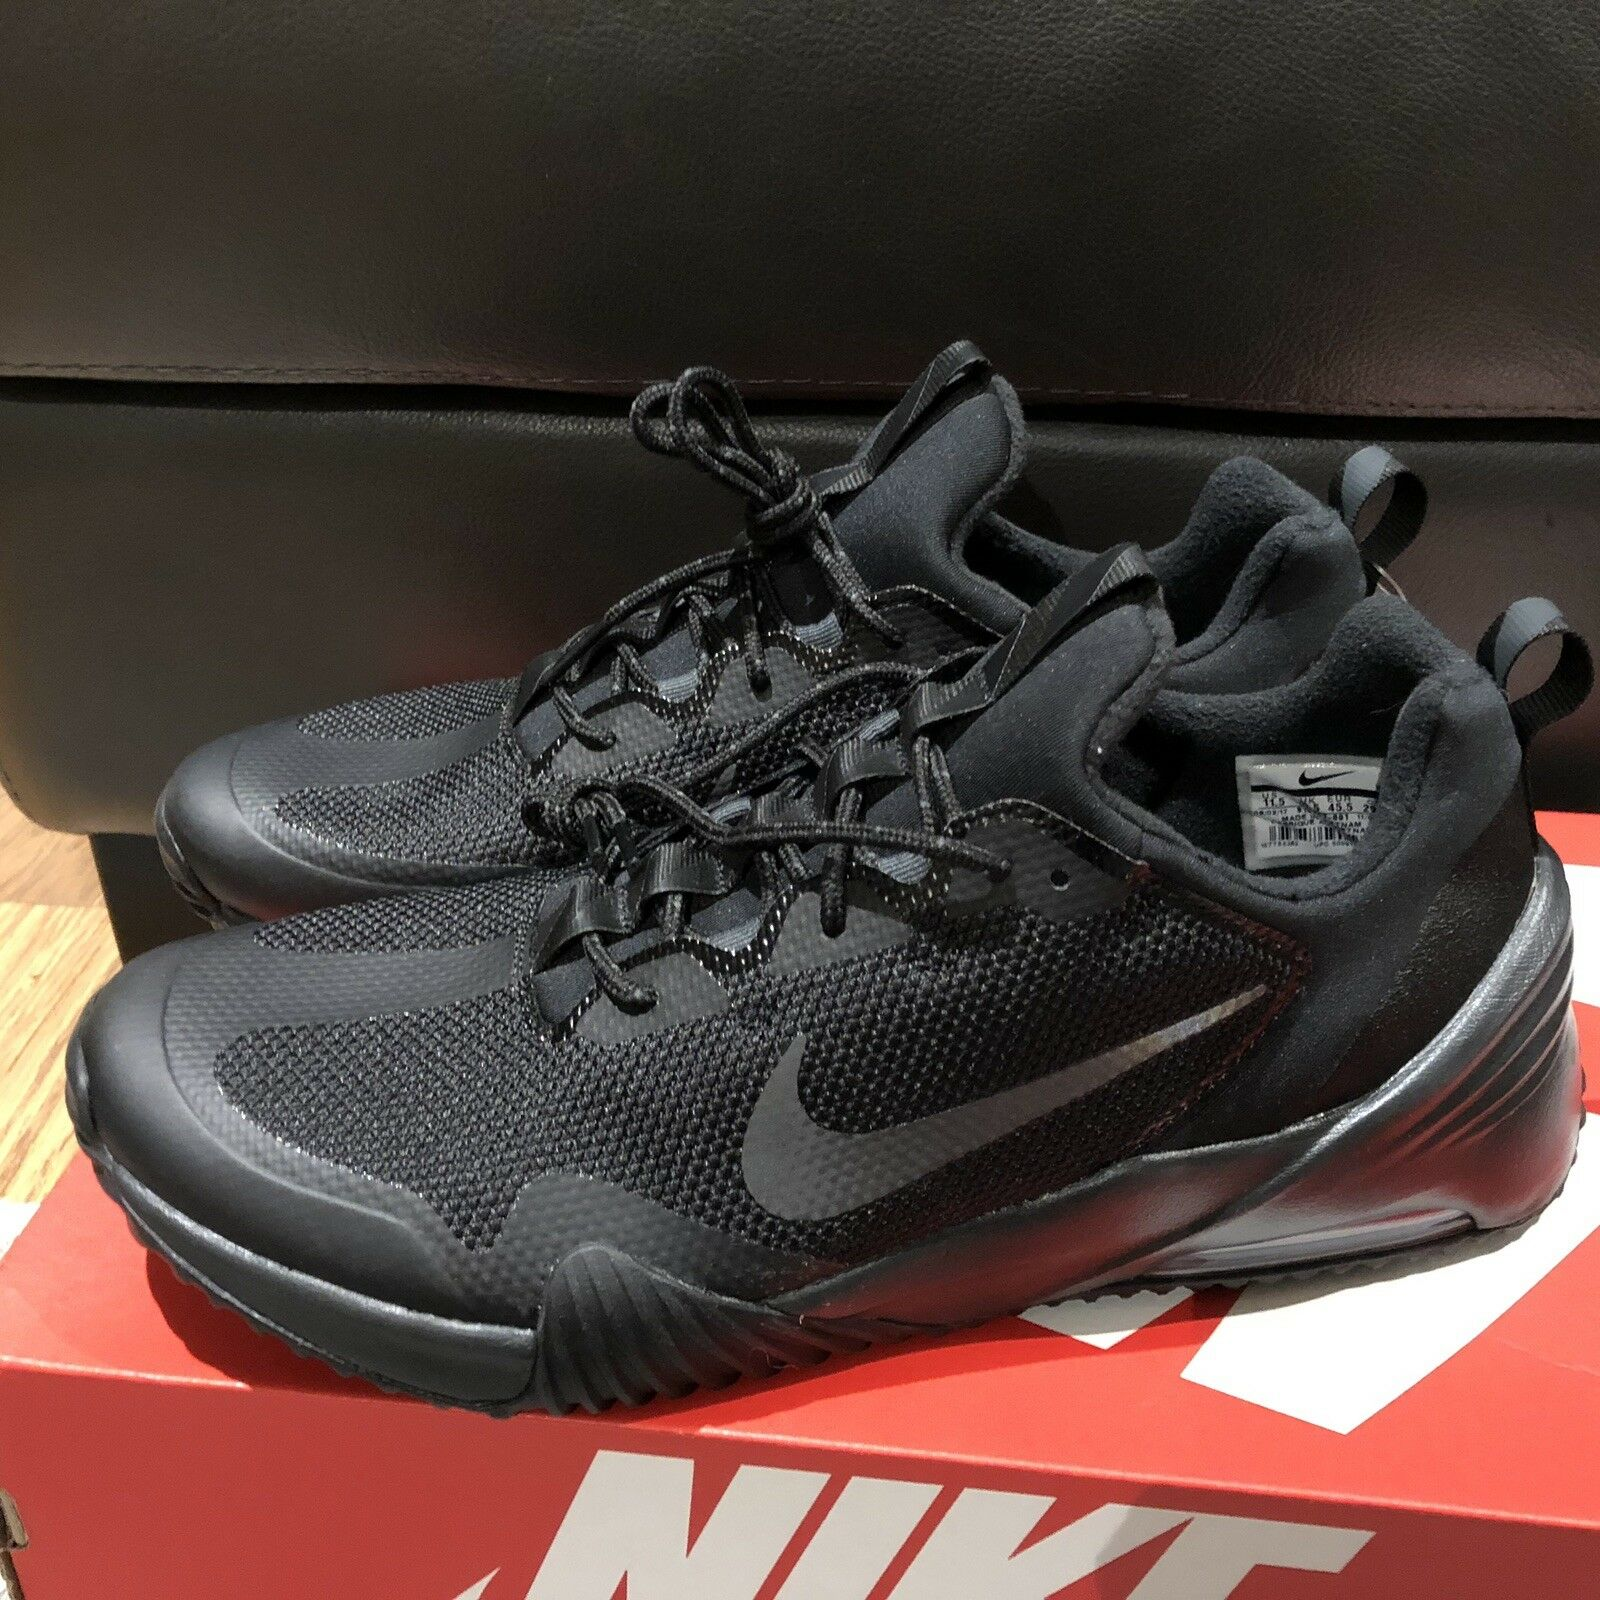 Nike Mens Air Max Grigora Running shoes Sneaker Black Size 11.5 New 916767-001